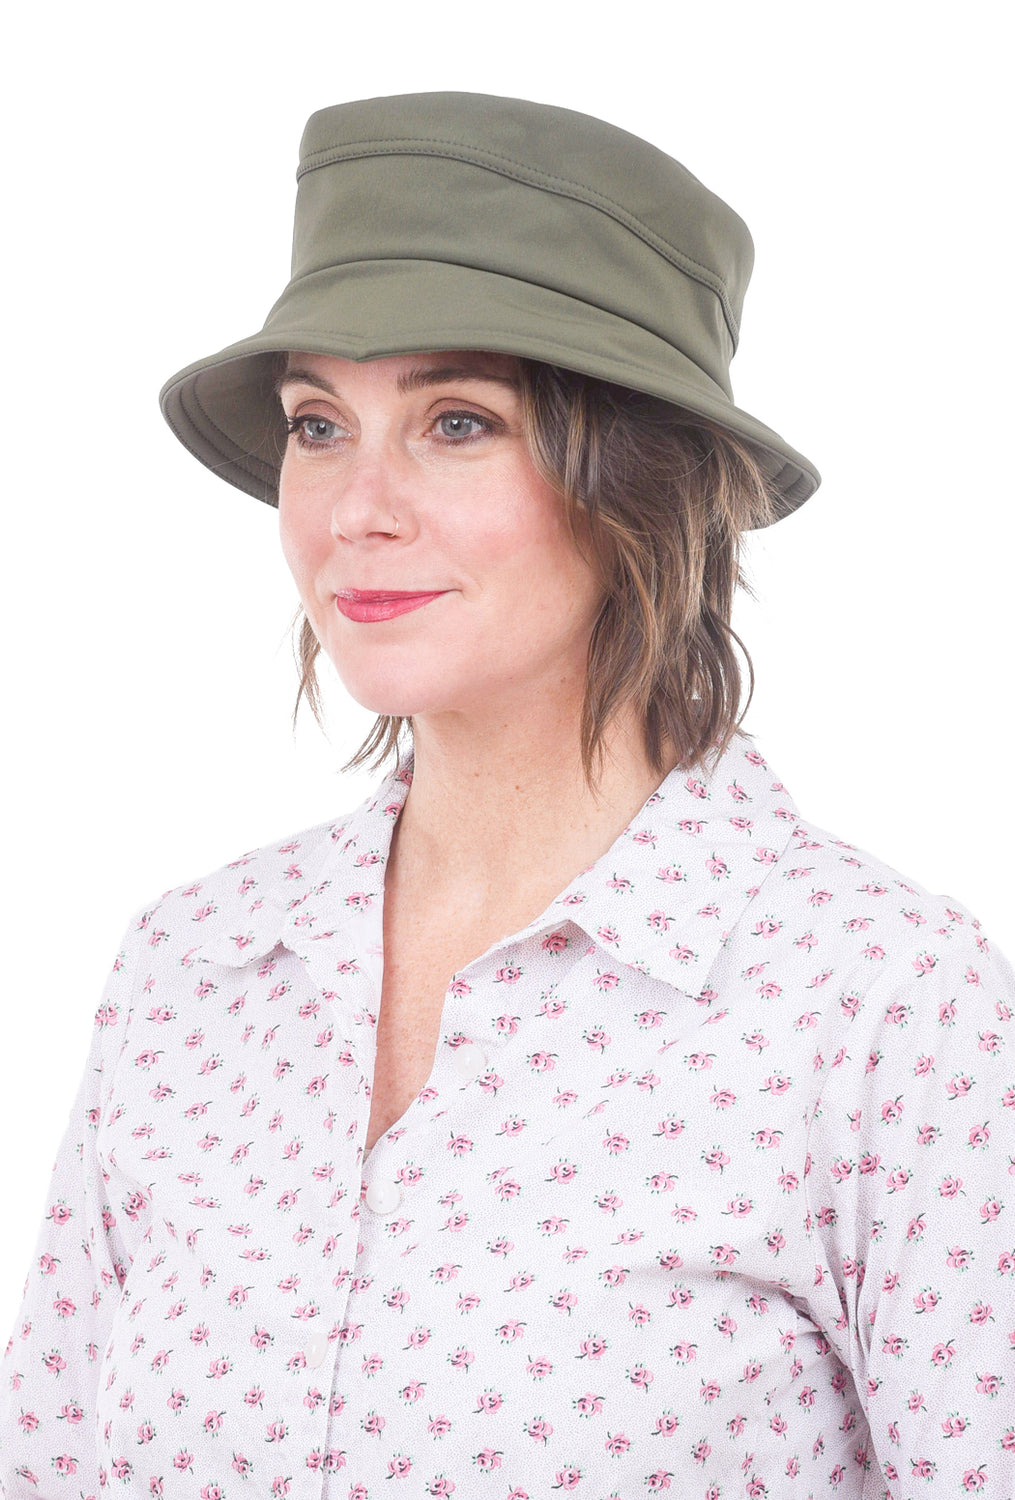 Lillie & Cohoe Hats Cloudburst Grace Hat, Olive